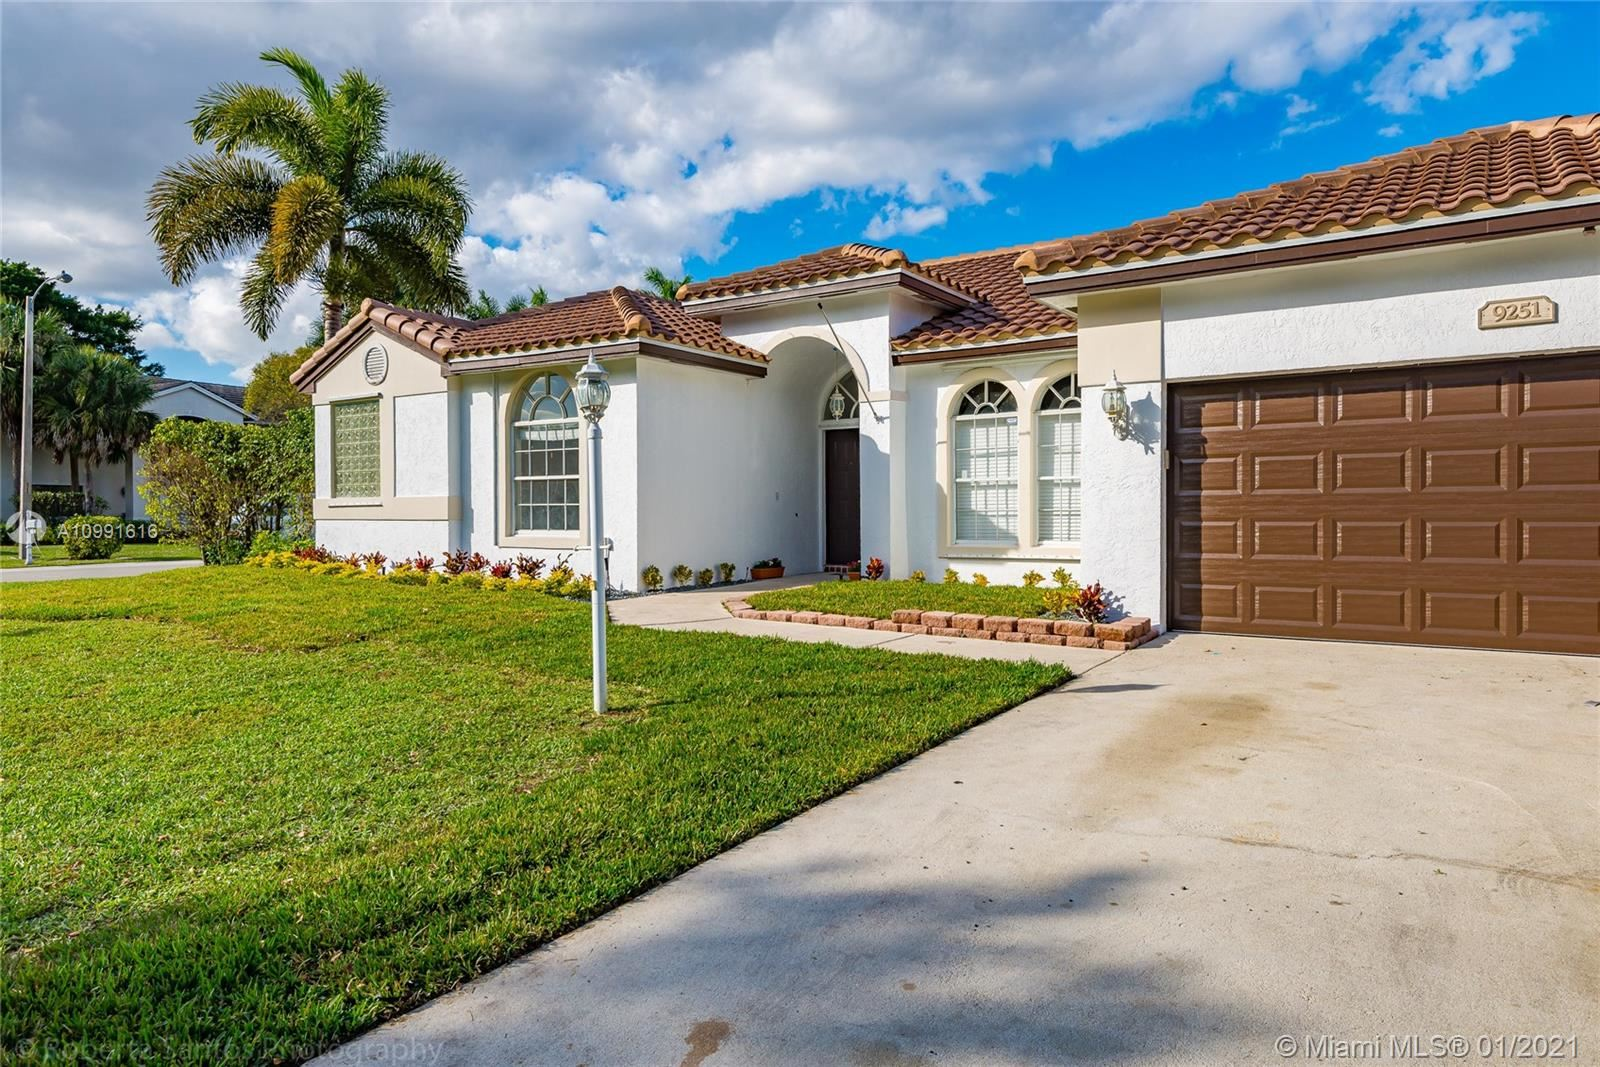 9251 NW 42nd Ct, Coral Springs, FL 33065 - #: A10991616